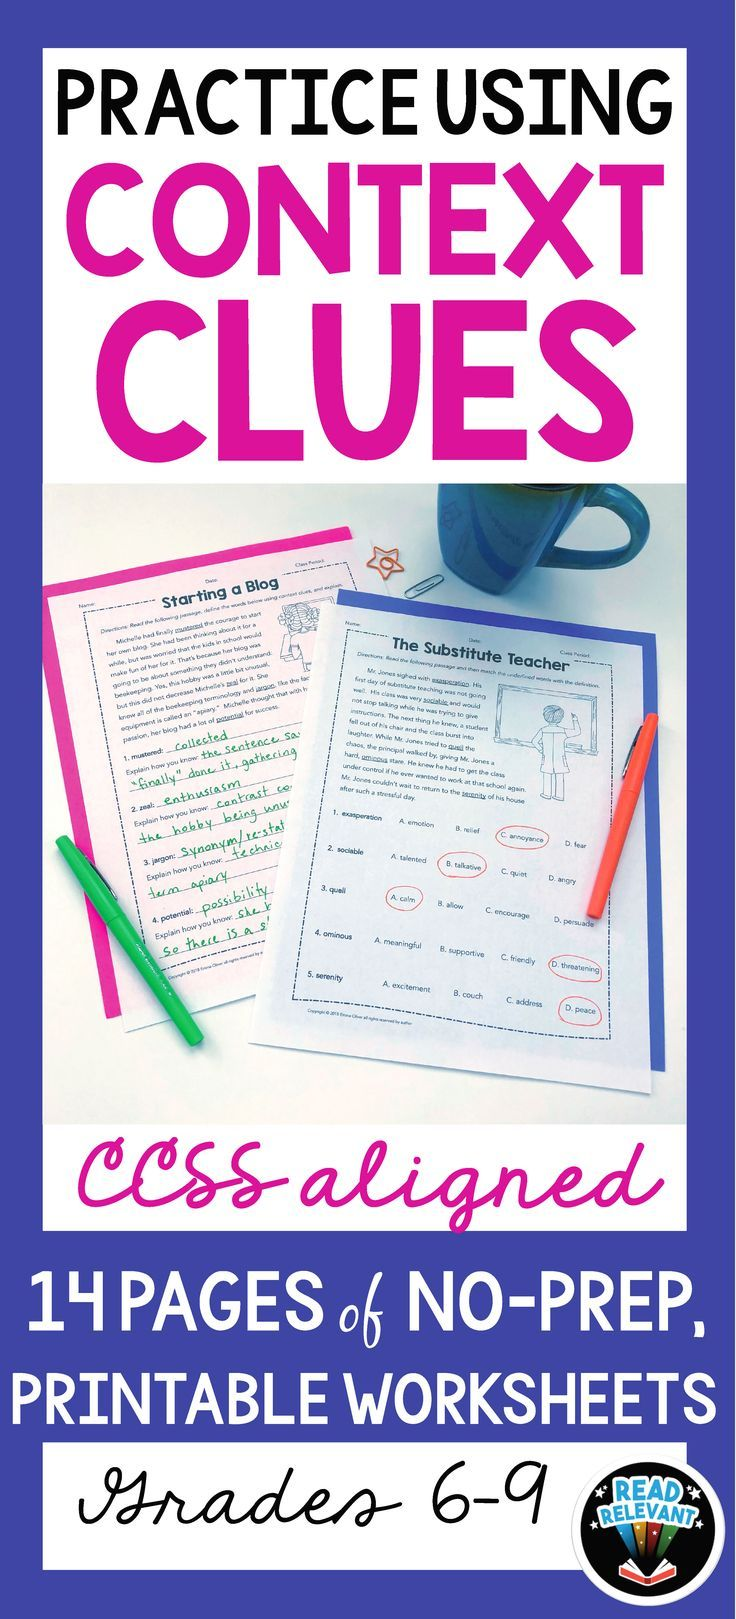 Vocabulary Practice Using Context Clues Worksheets